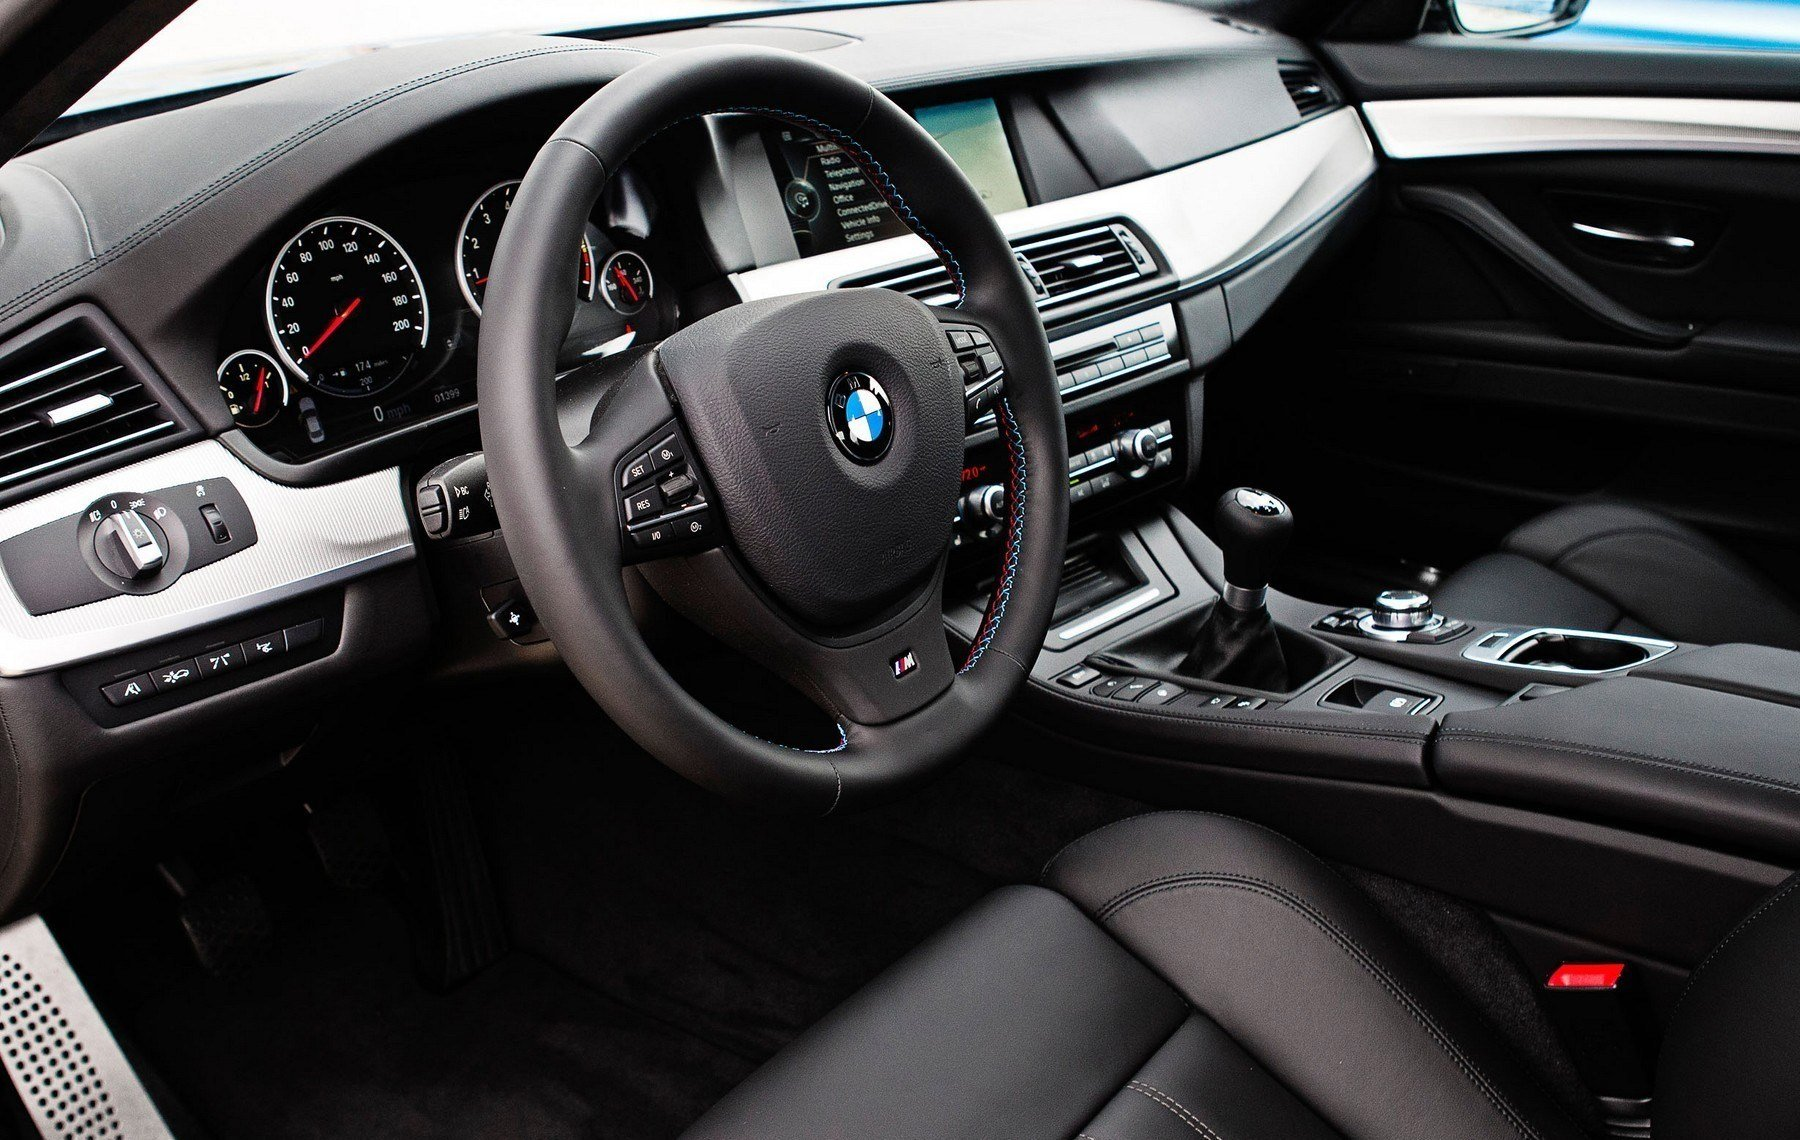 Latest Bmw M5 Car Interior Wallpapers Hd Wallpapers Free Download